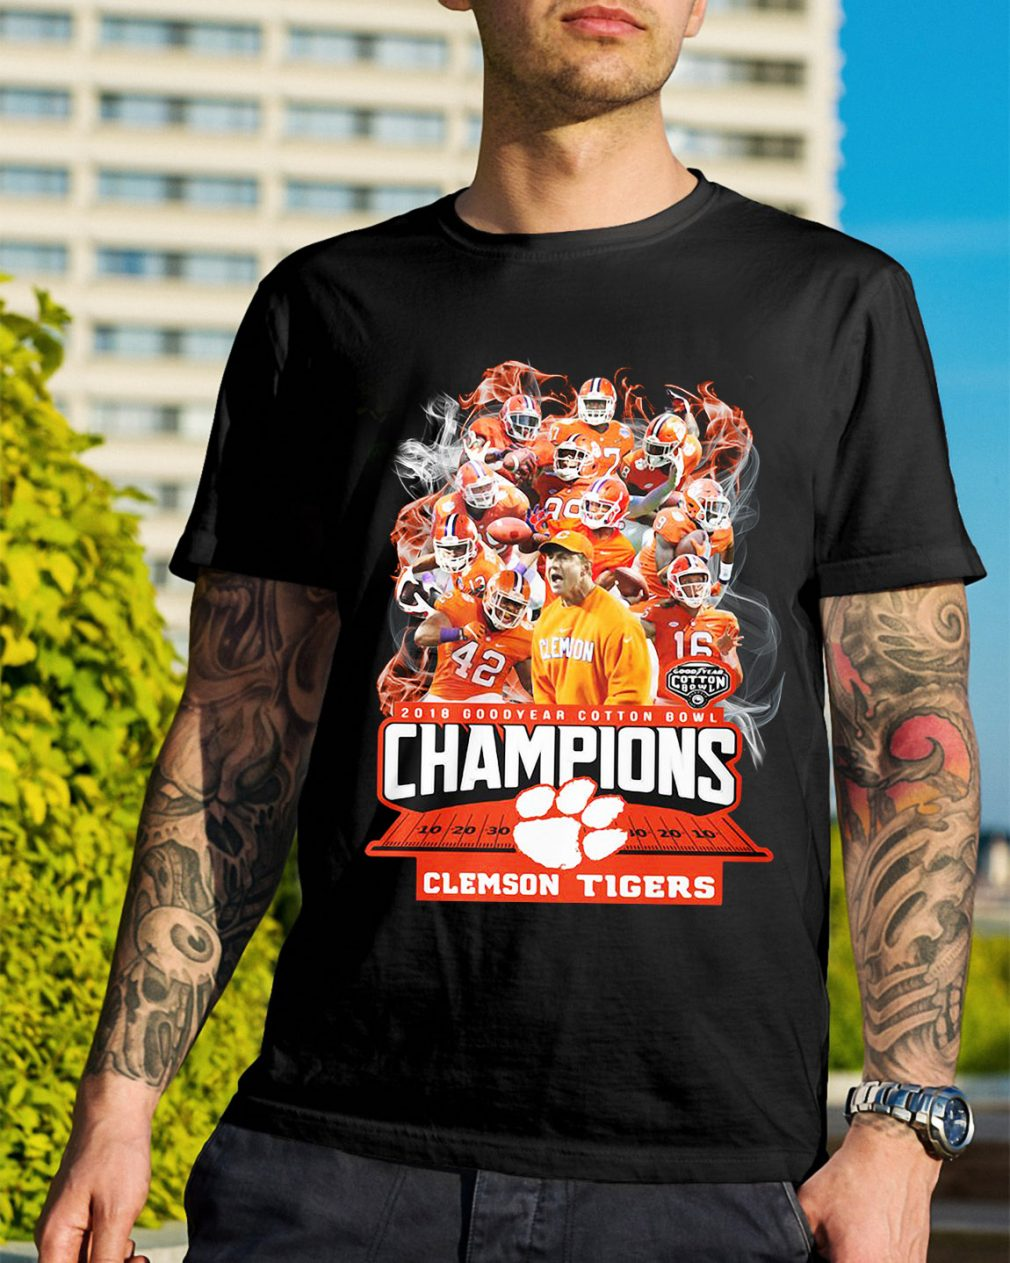 Clemson Tigers 2018 Goodyear cotton bowl Champions shirt